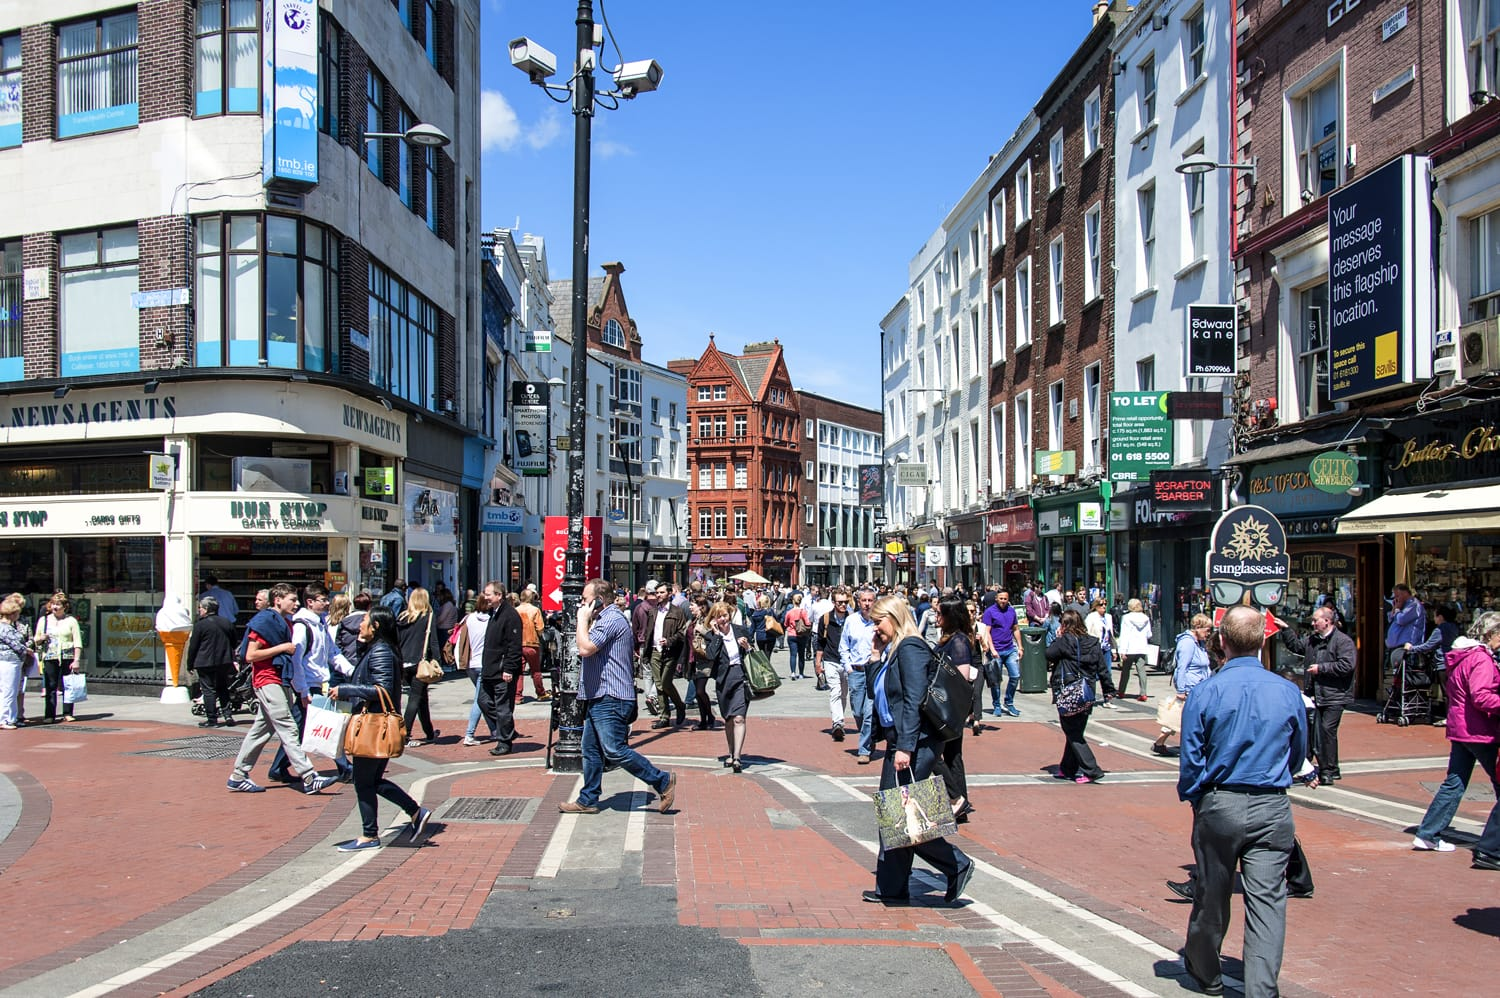 Grafton Street in Dublin, Ireland